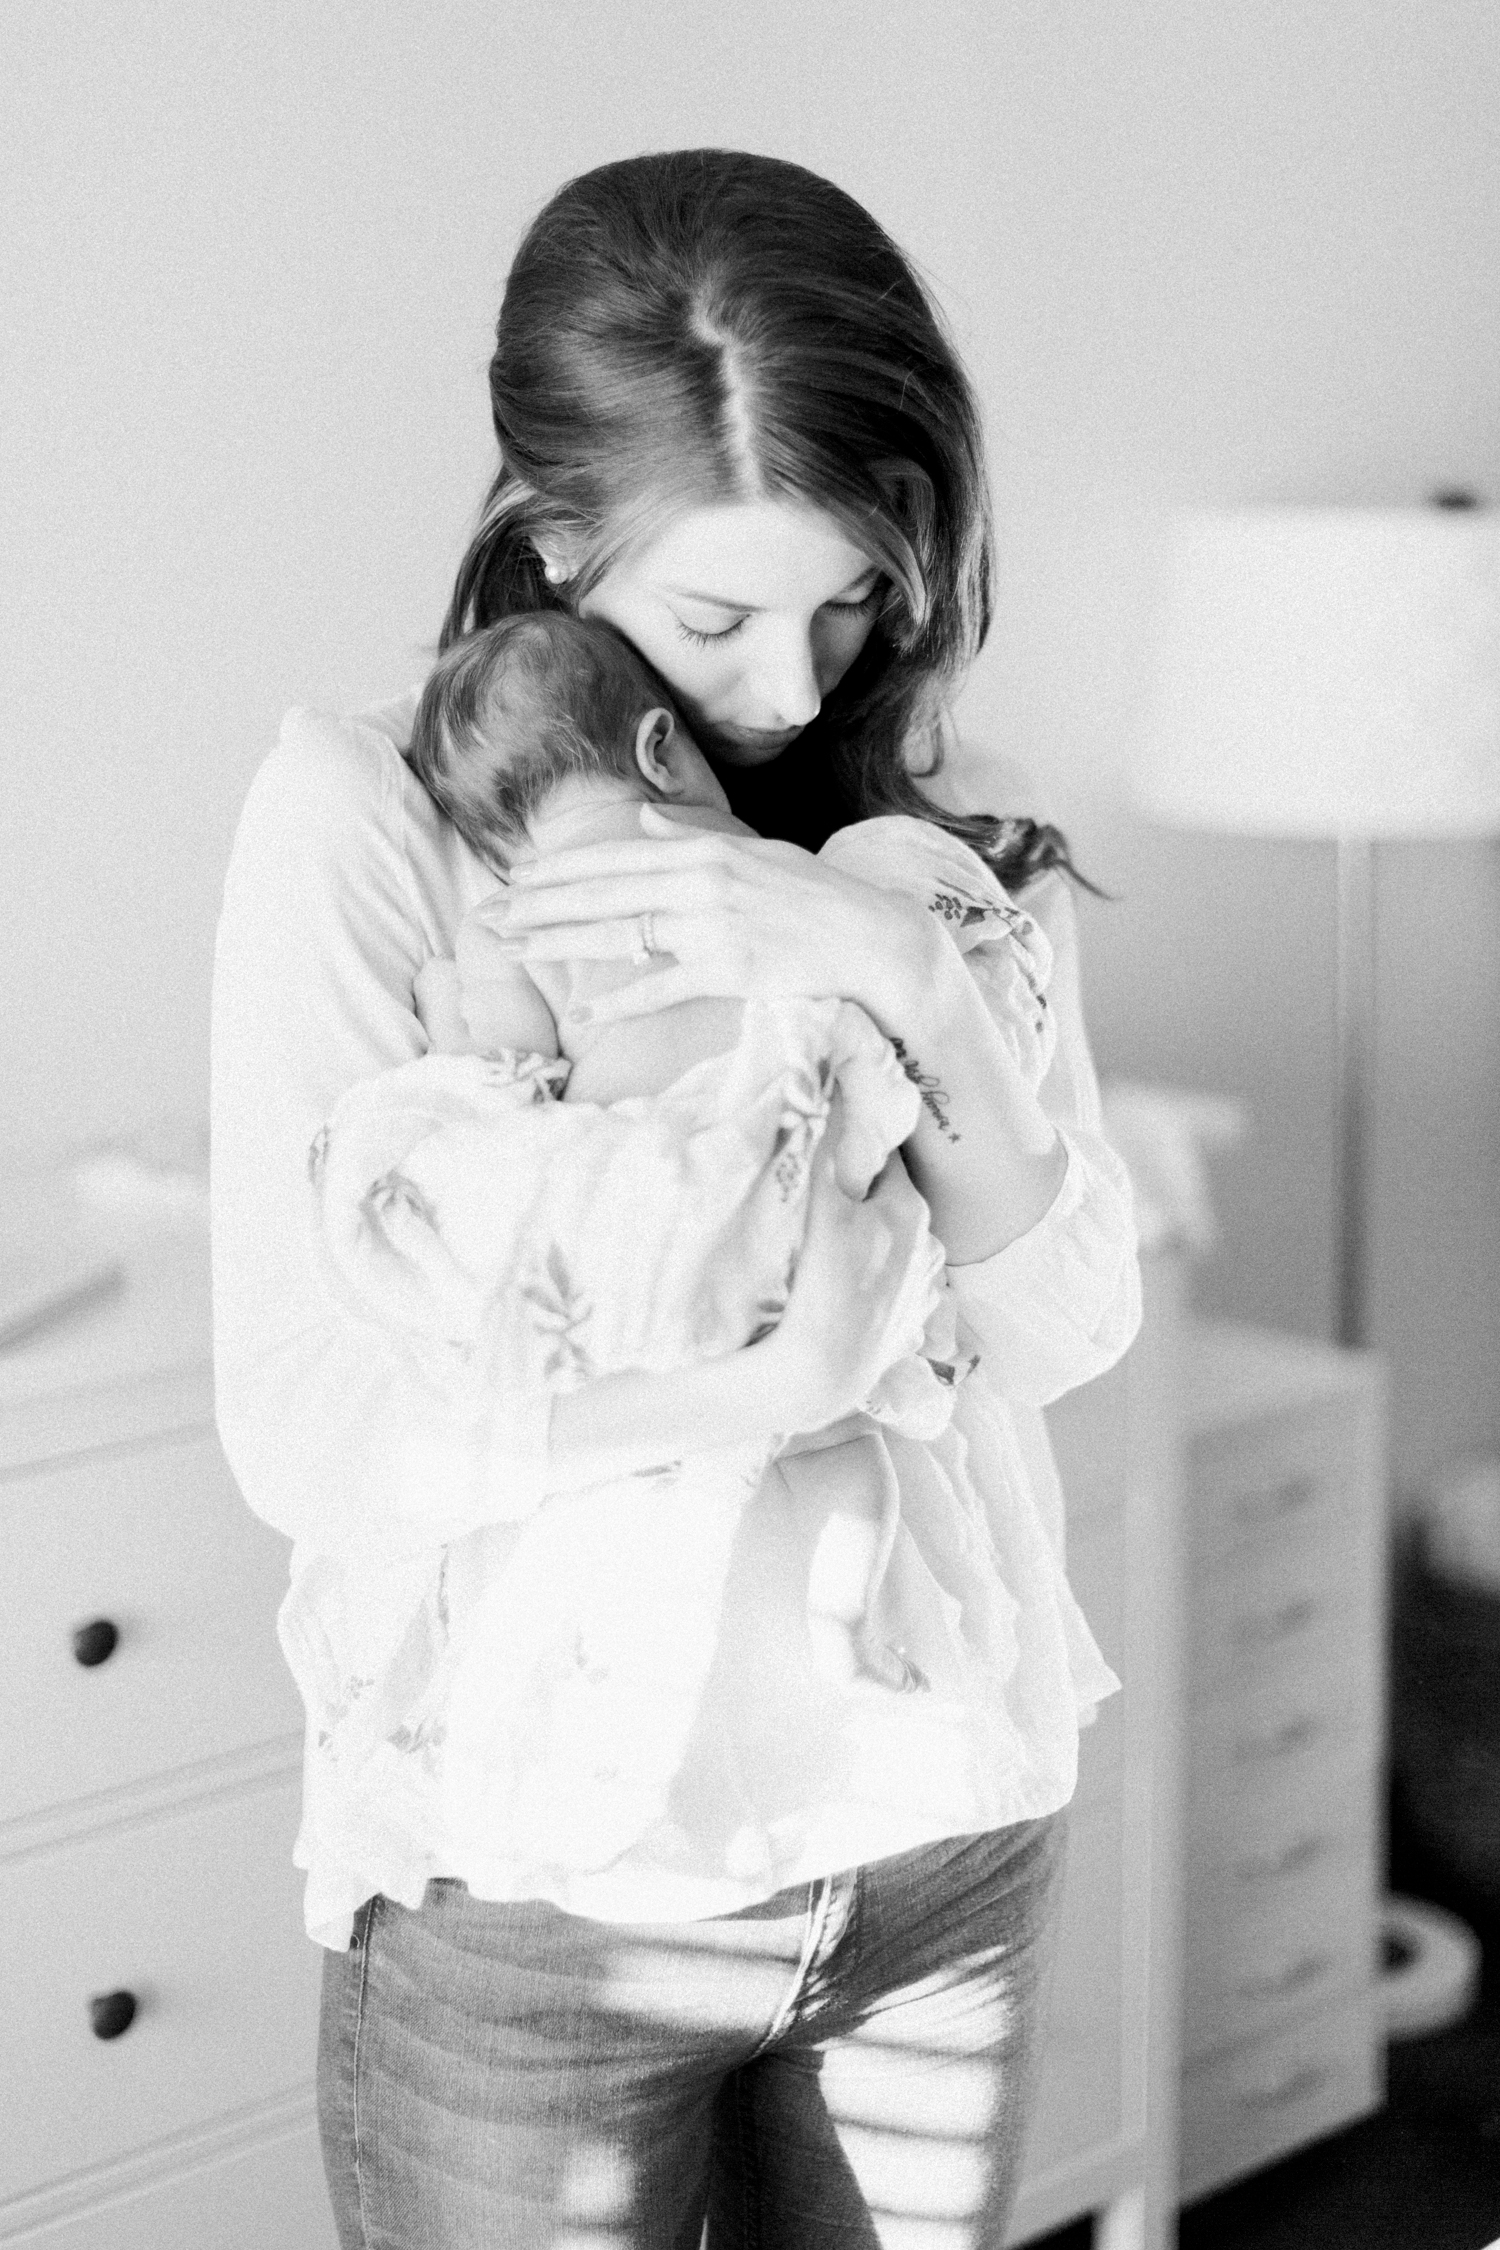 calgary-newborn-photography-photographer-home-bright-modern-winter-1-22.jpg